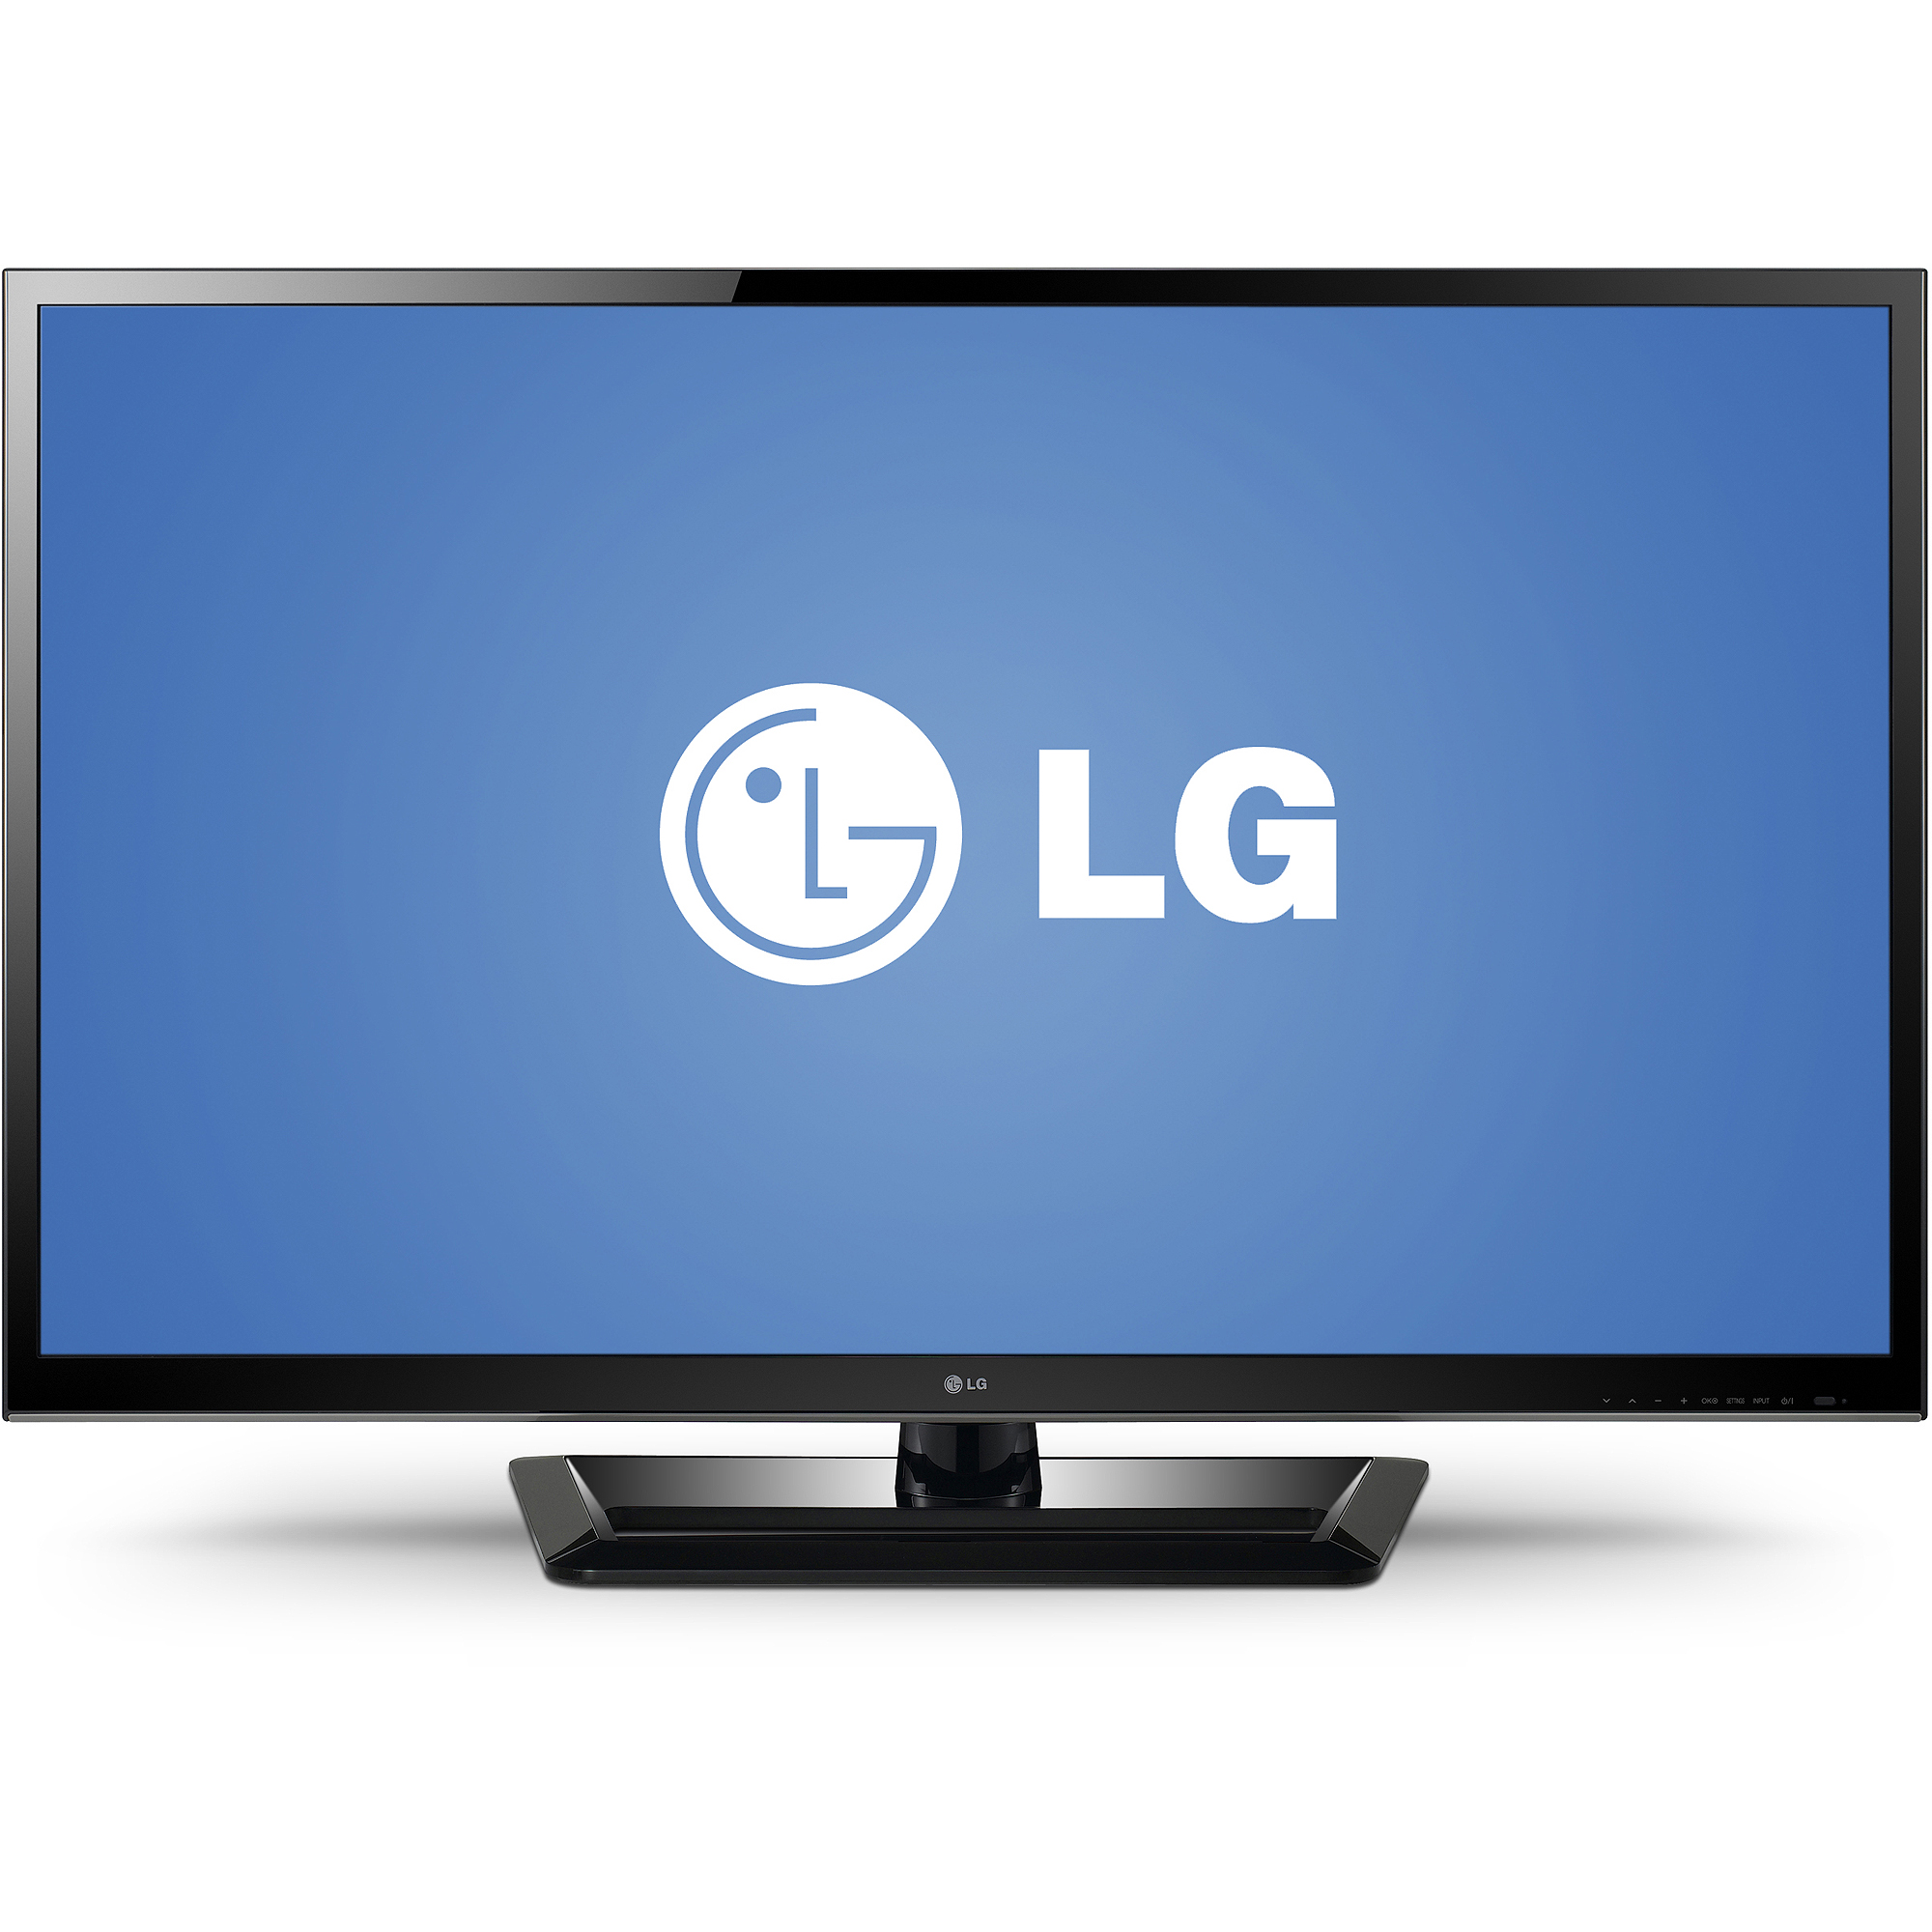 "LG 47LM4600 47"" 1080p 120Hz 3D LED (1.4"" ultra-slim)  HDTV"